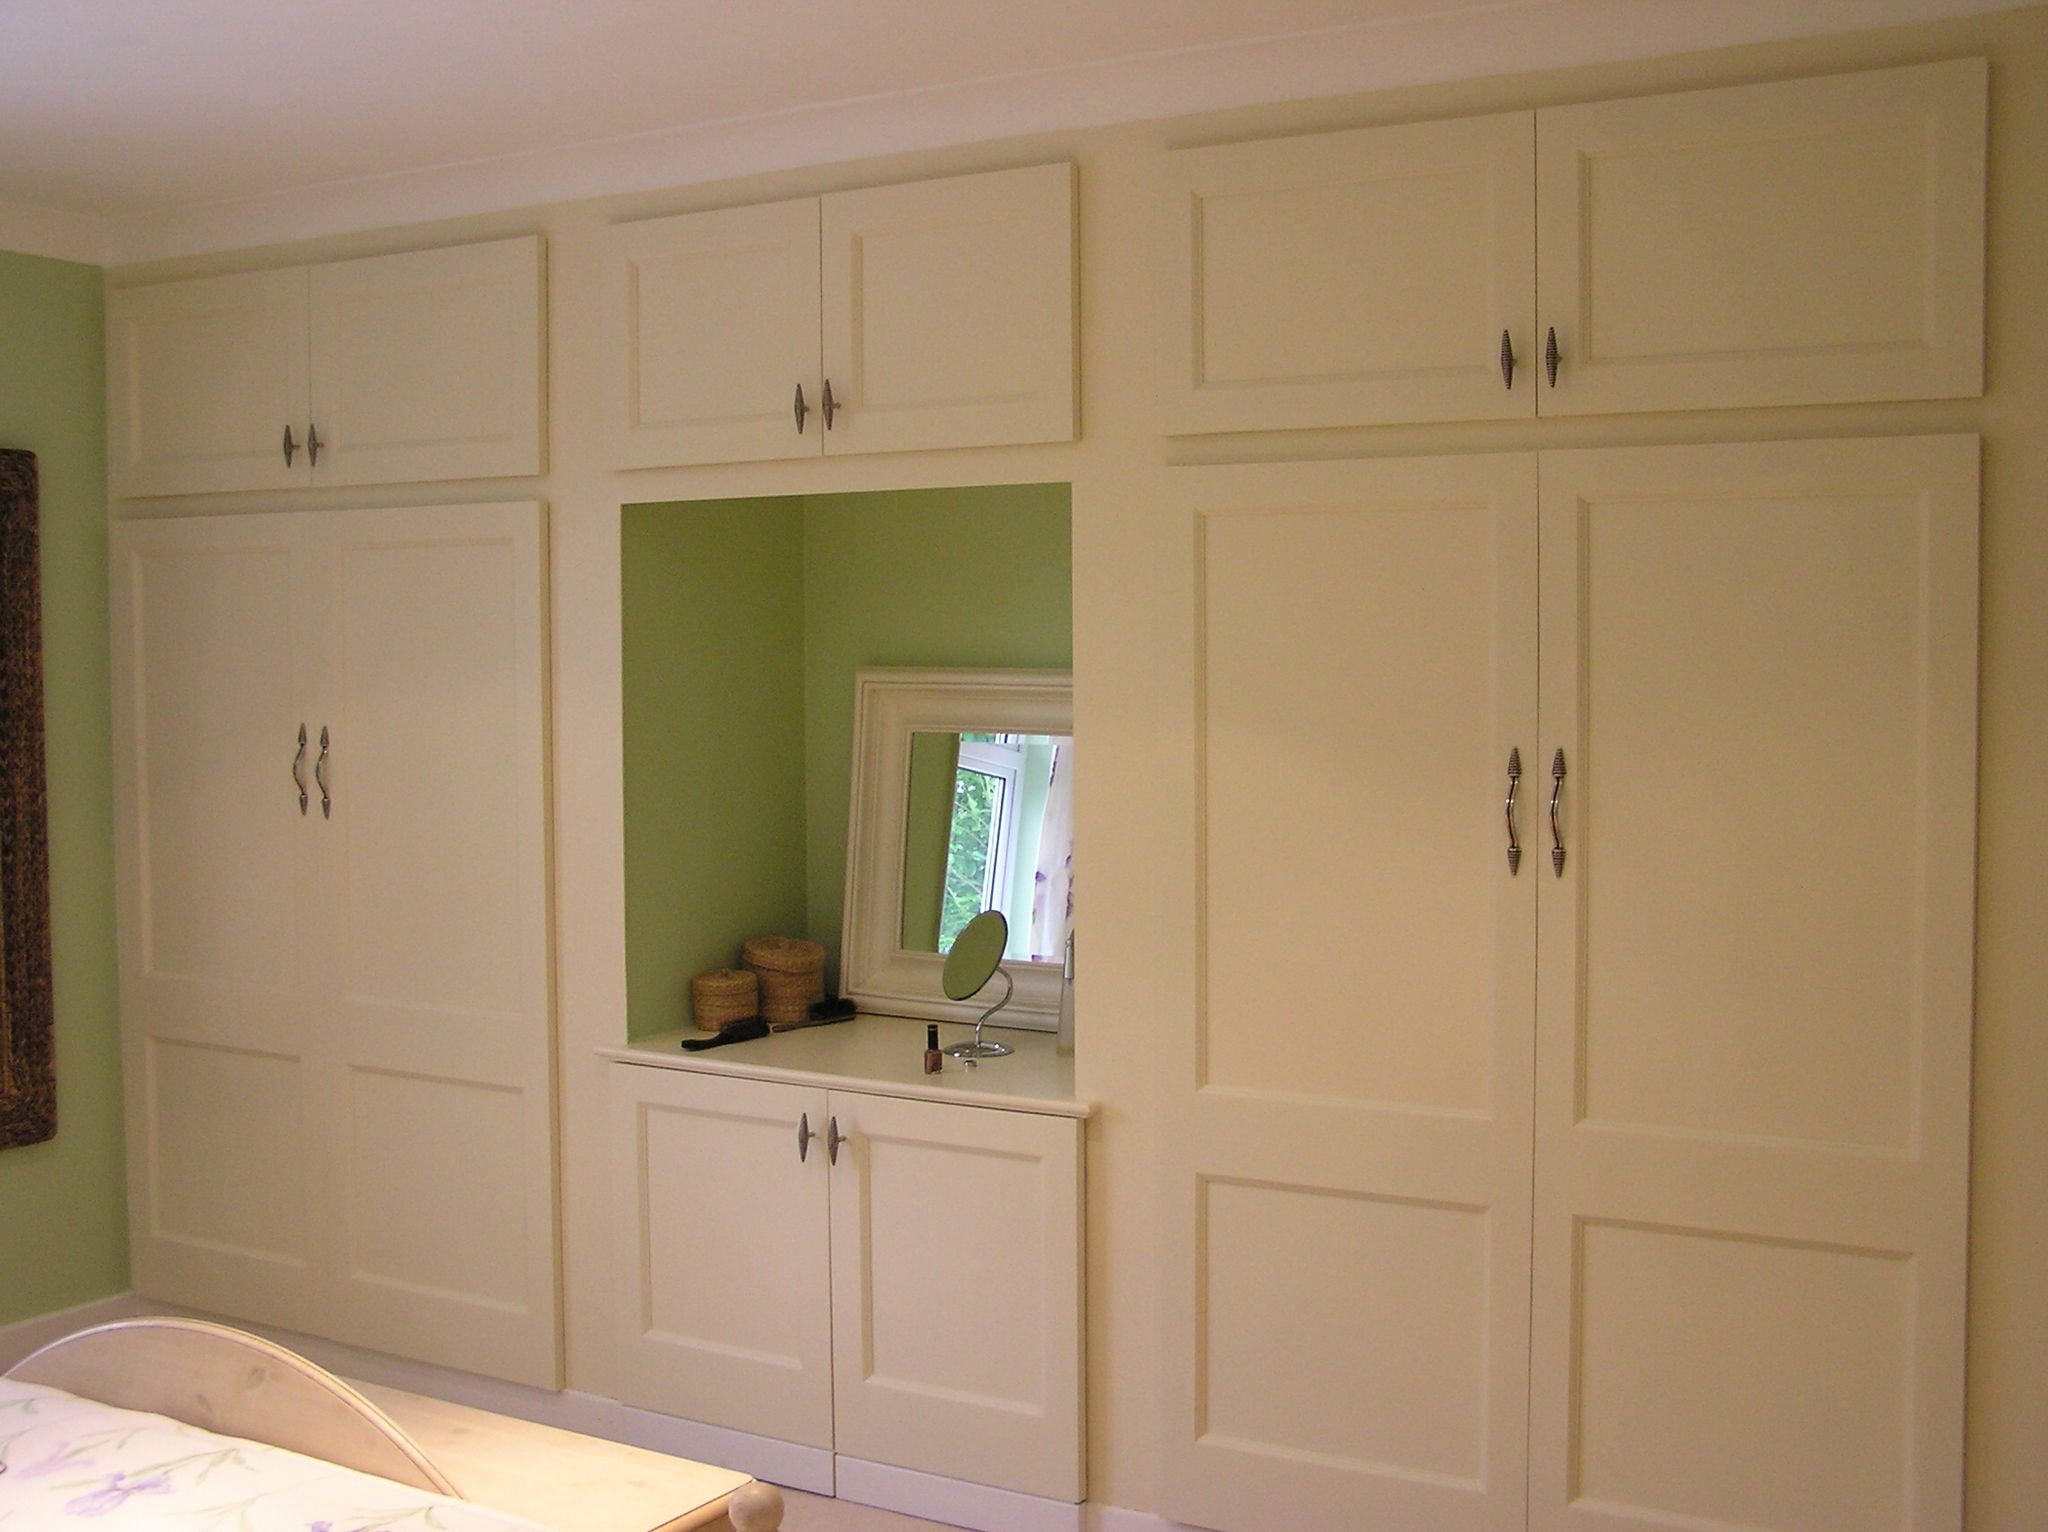 Bedroom dressing table and cupboard - Fitted Wardrobes With Dressing Table Bedroom Wardrobedressing